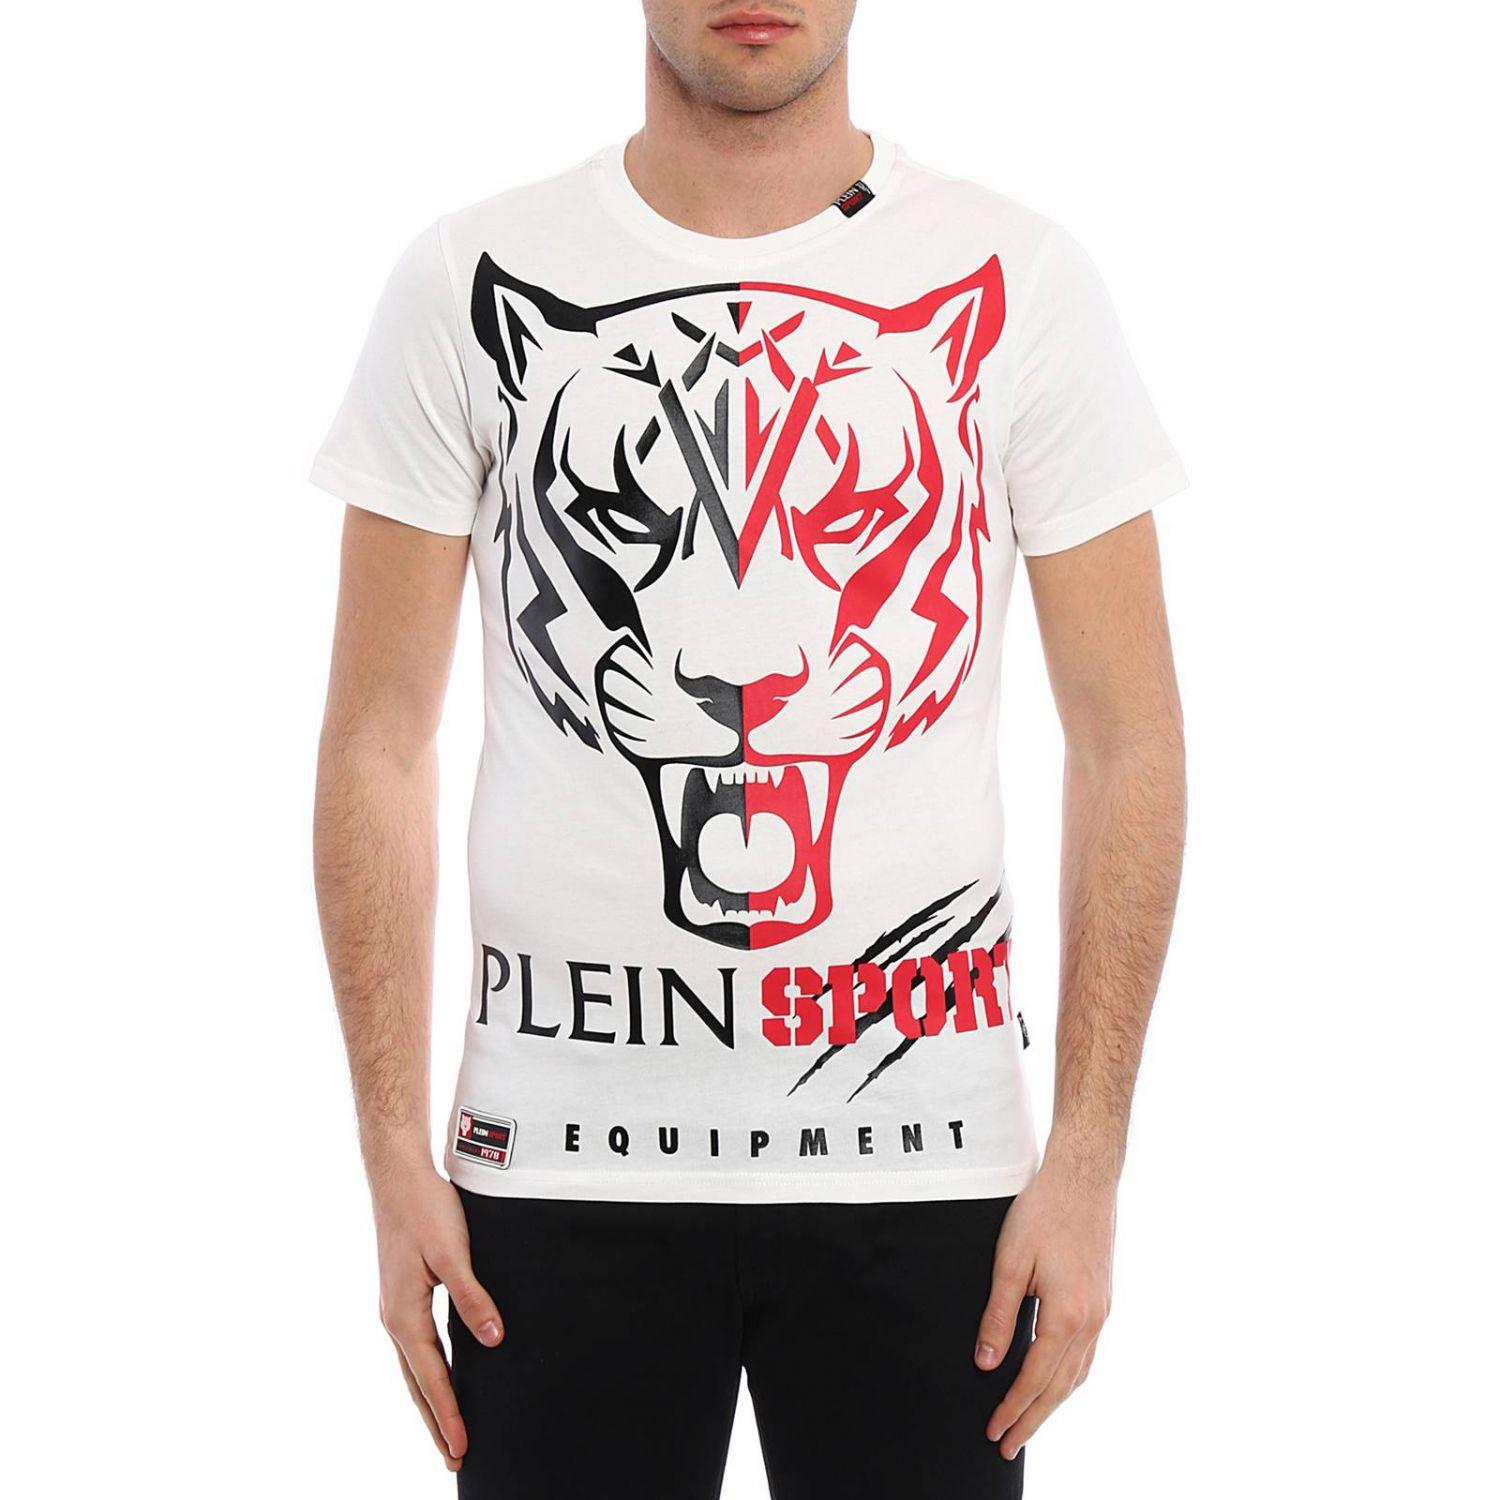 lyst philipp plein t shirt men in white for men. Black Bedroom Furniture Sets. Home Design Ideas